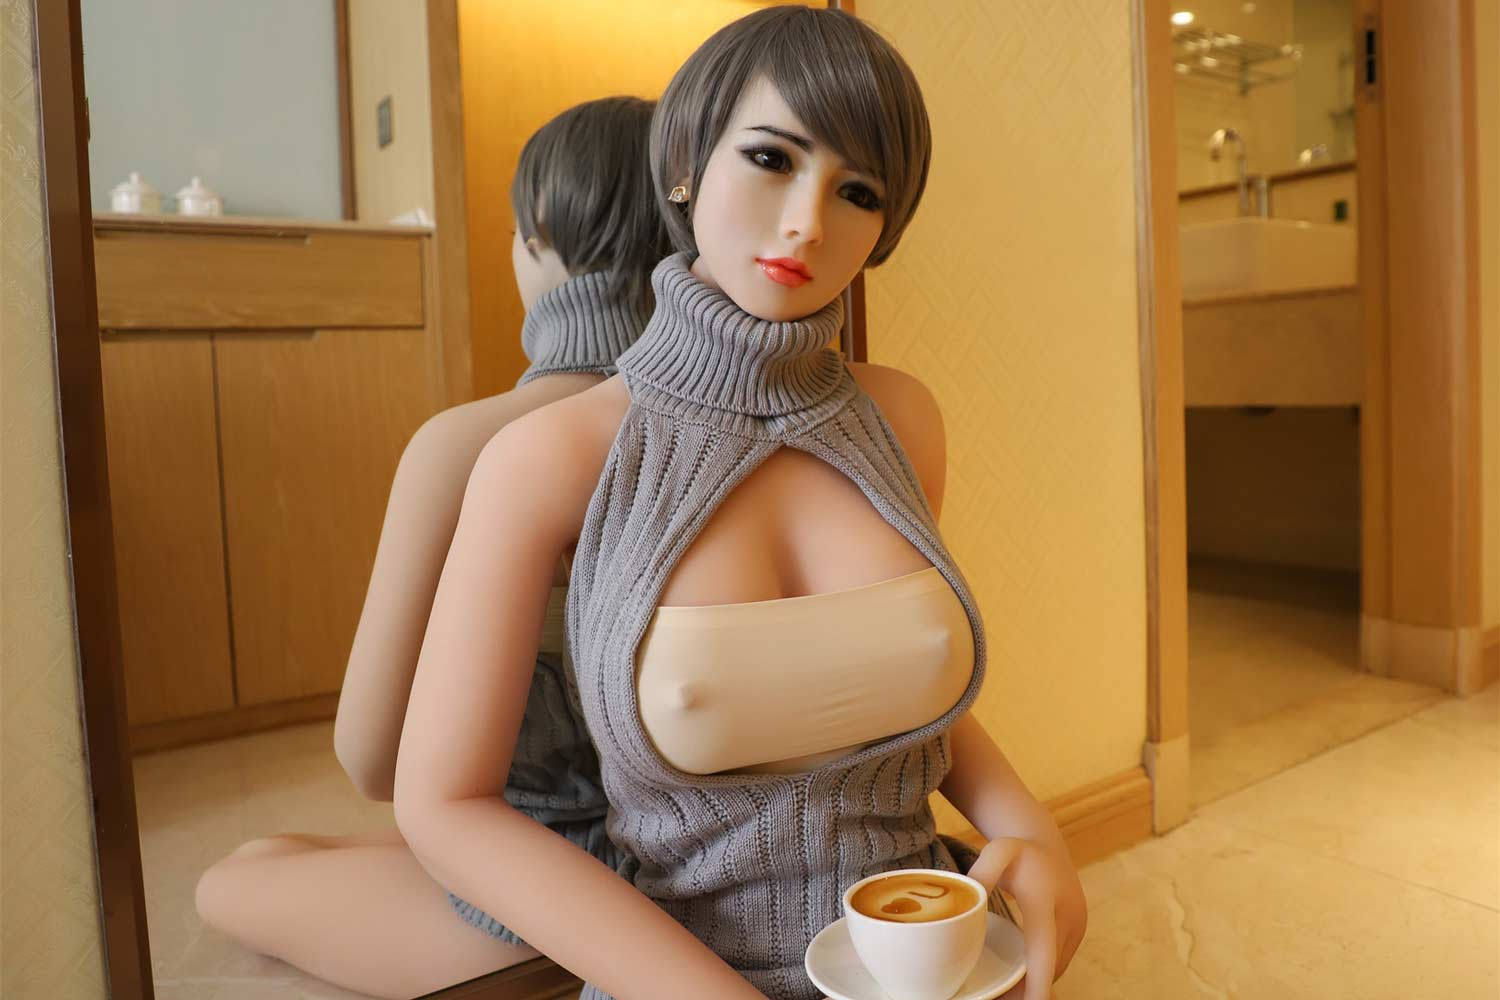 Silicone sex doll with coffee in hand